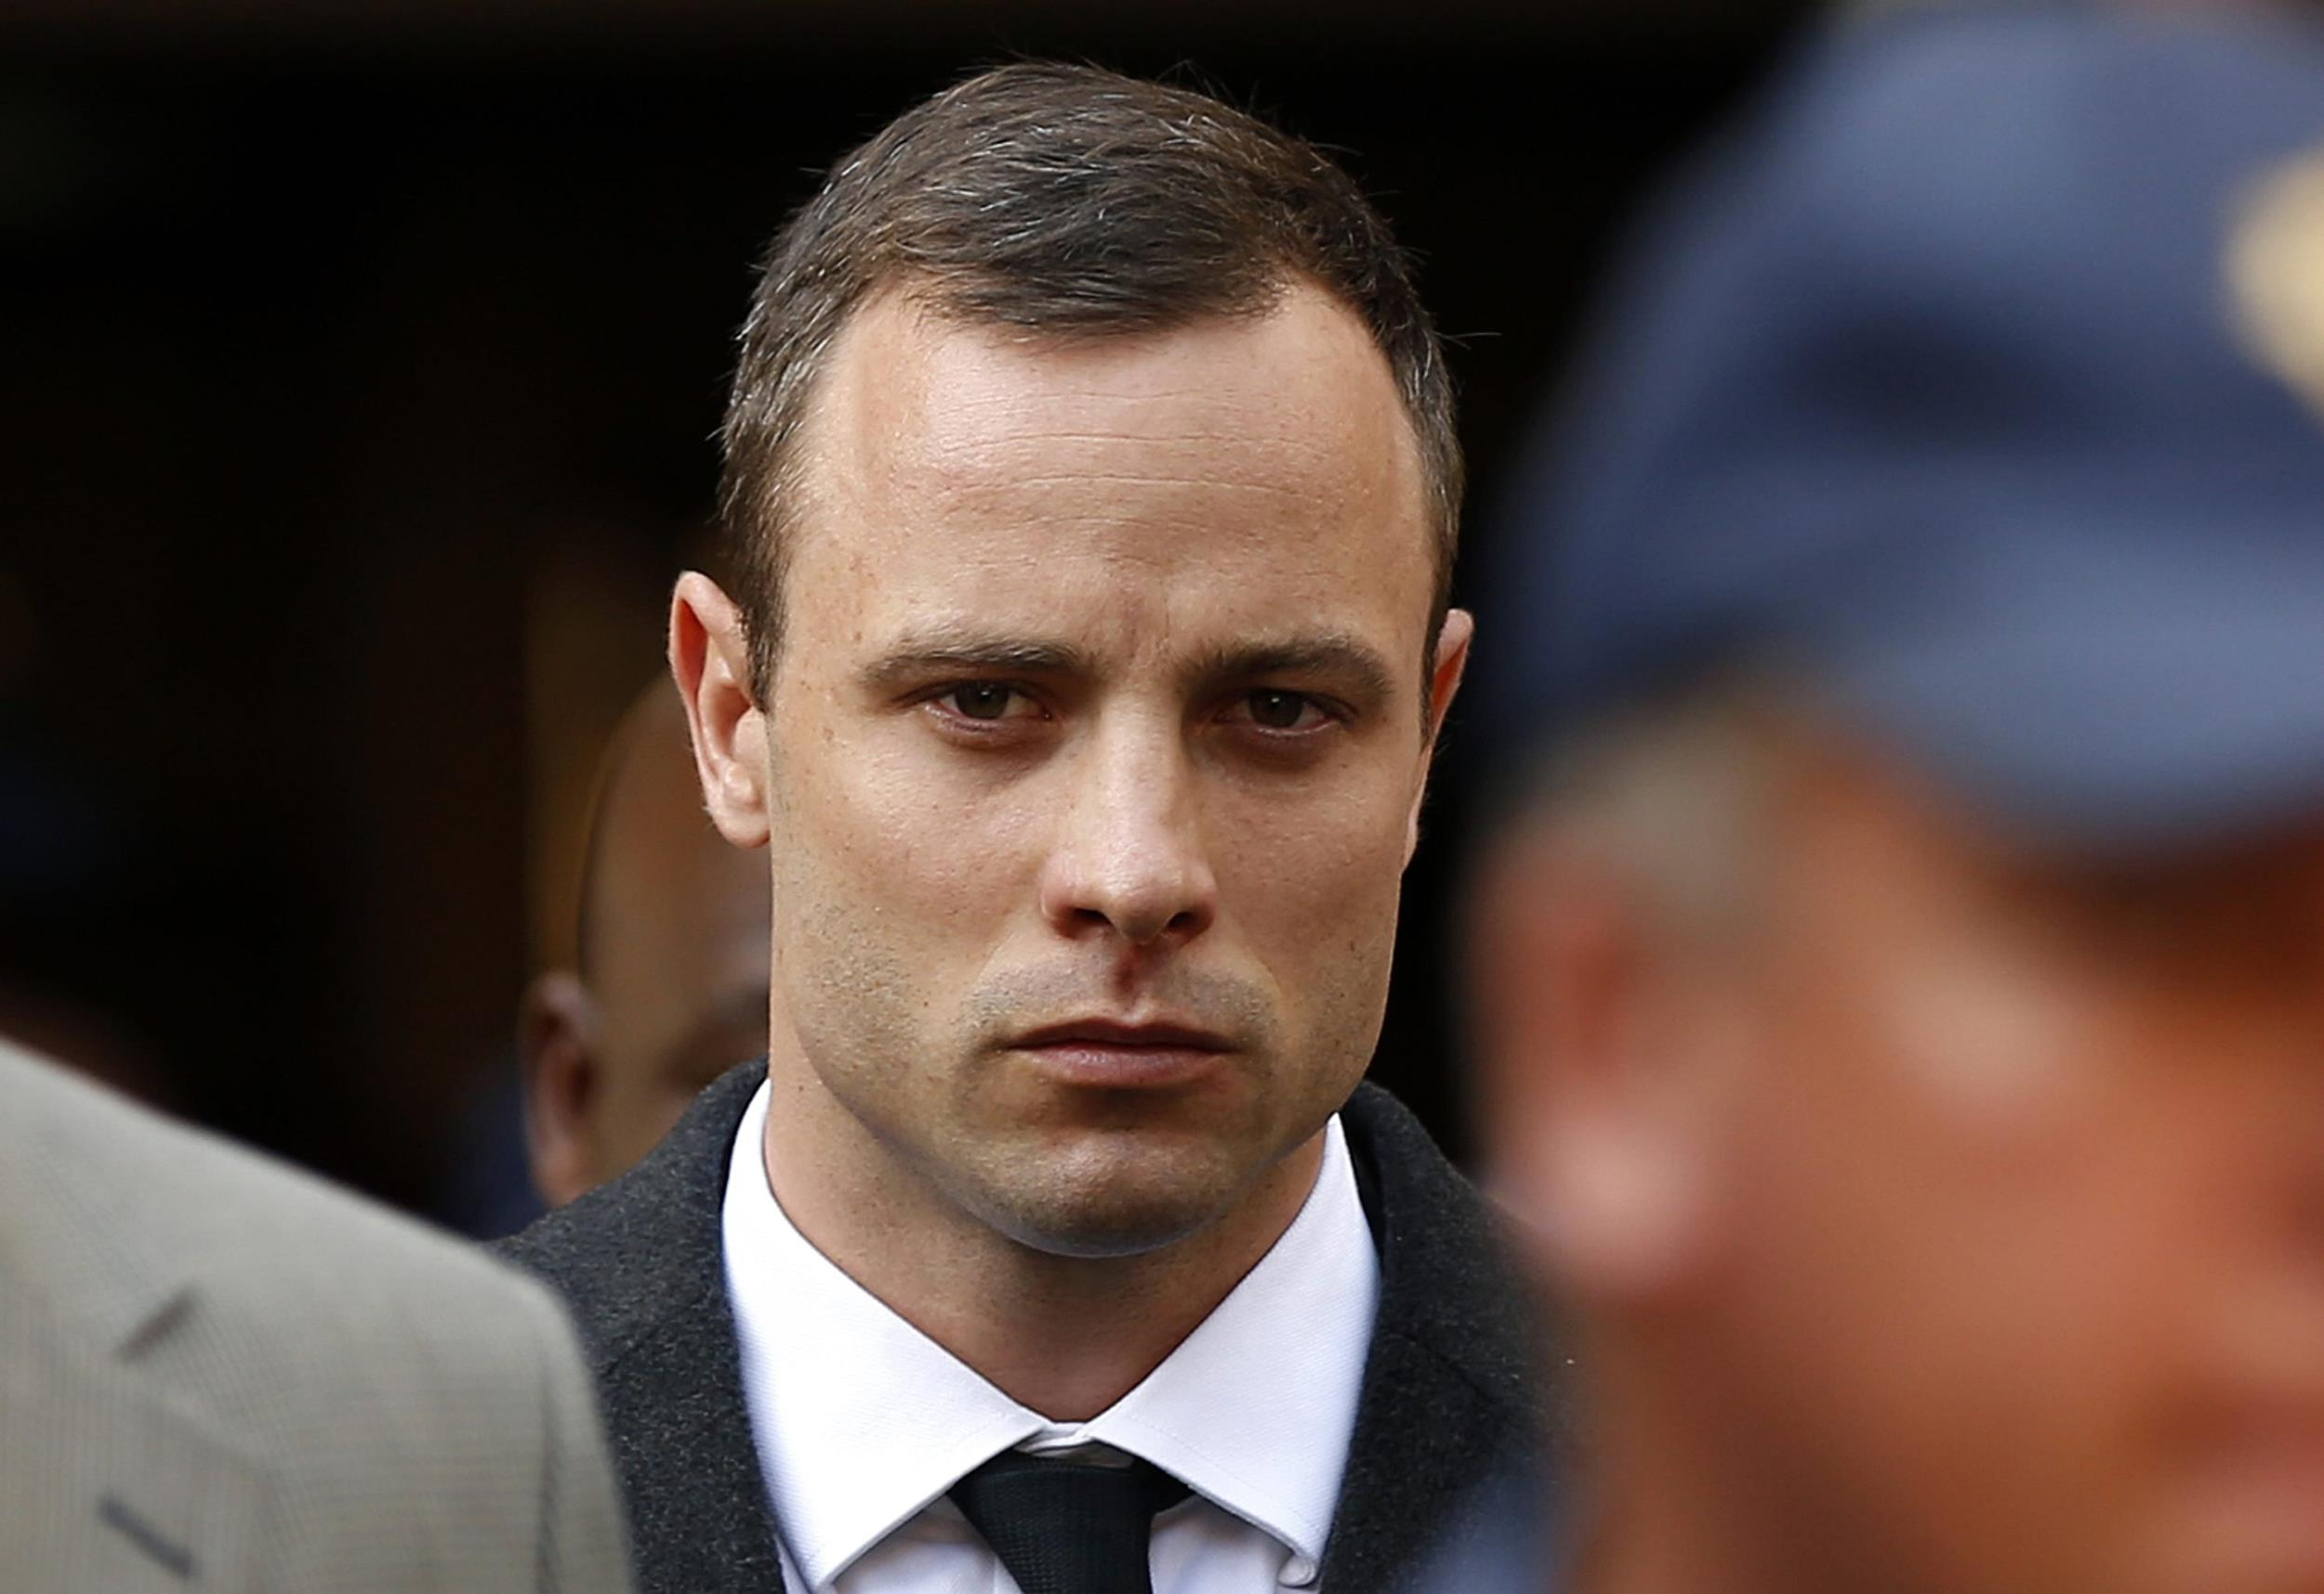 Image: Pistorius leaves after attending his trial at the high court in Pretoria